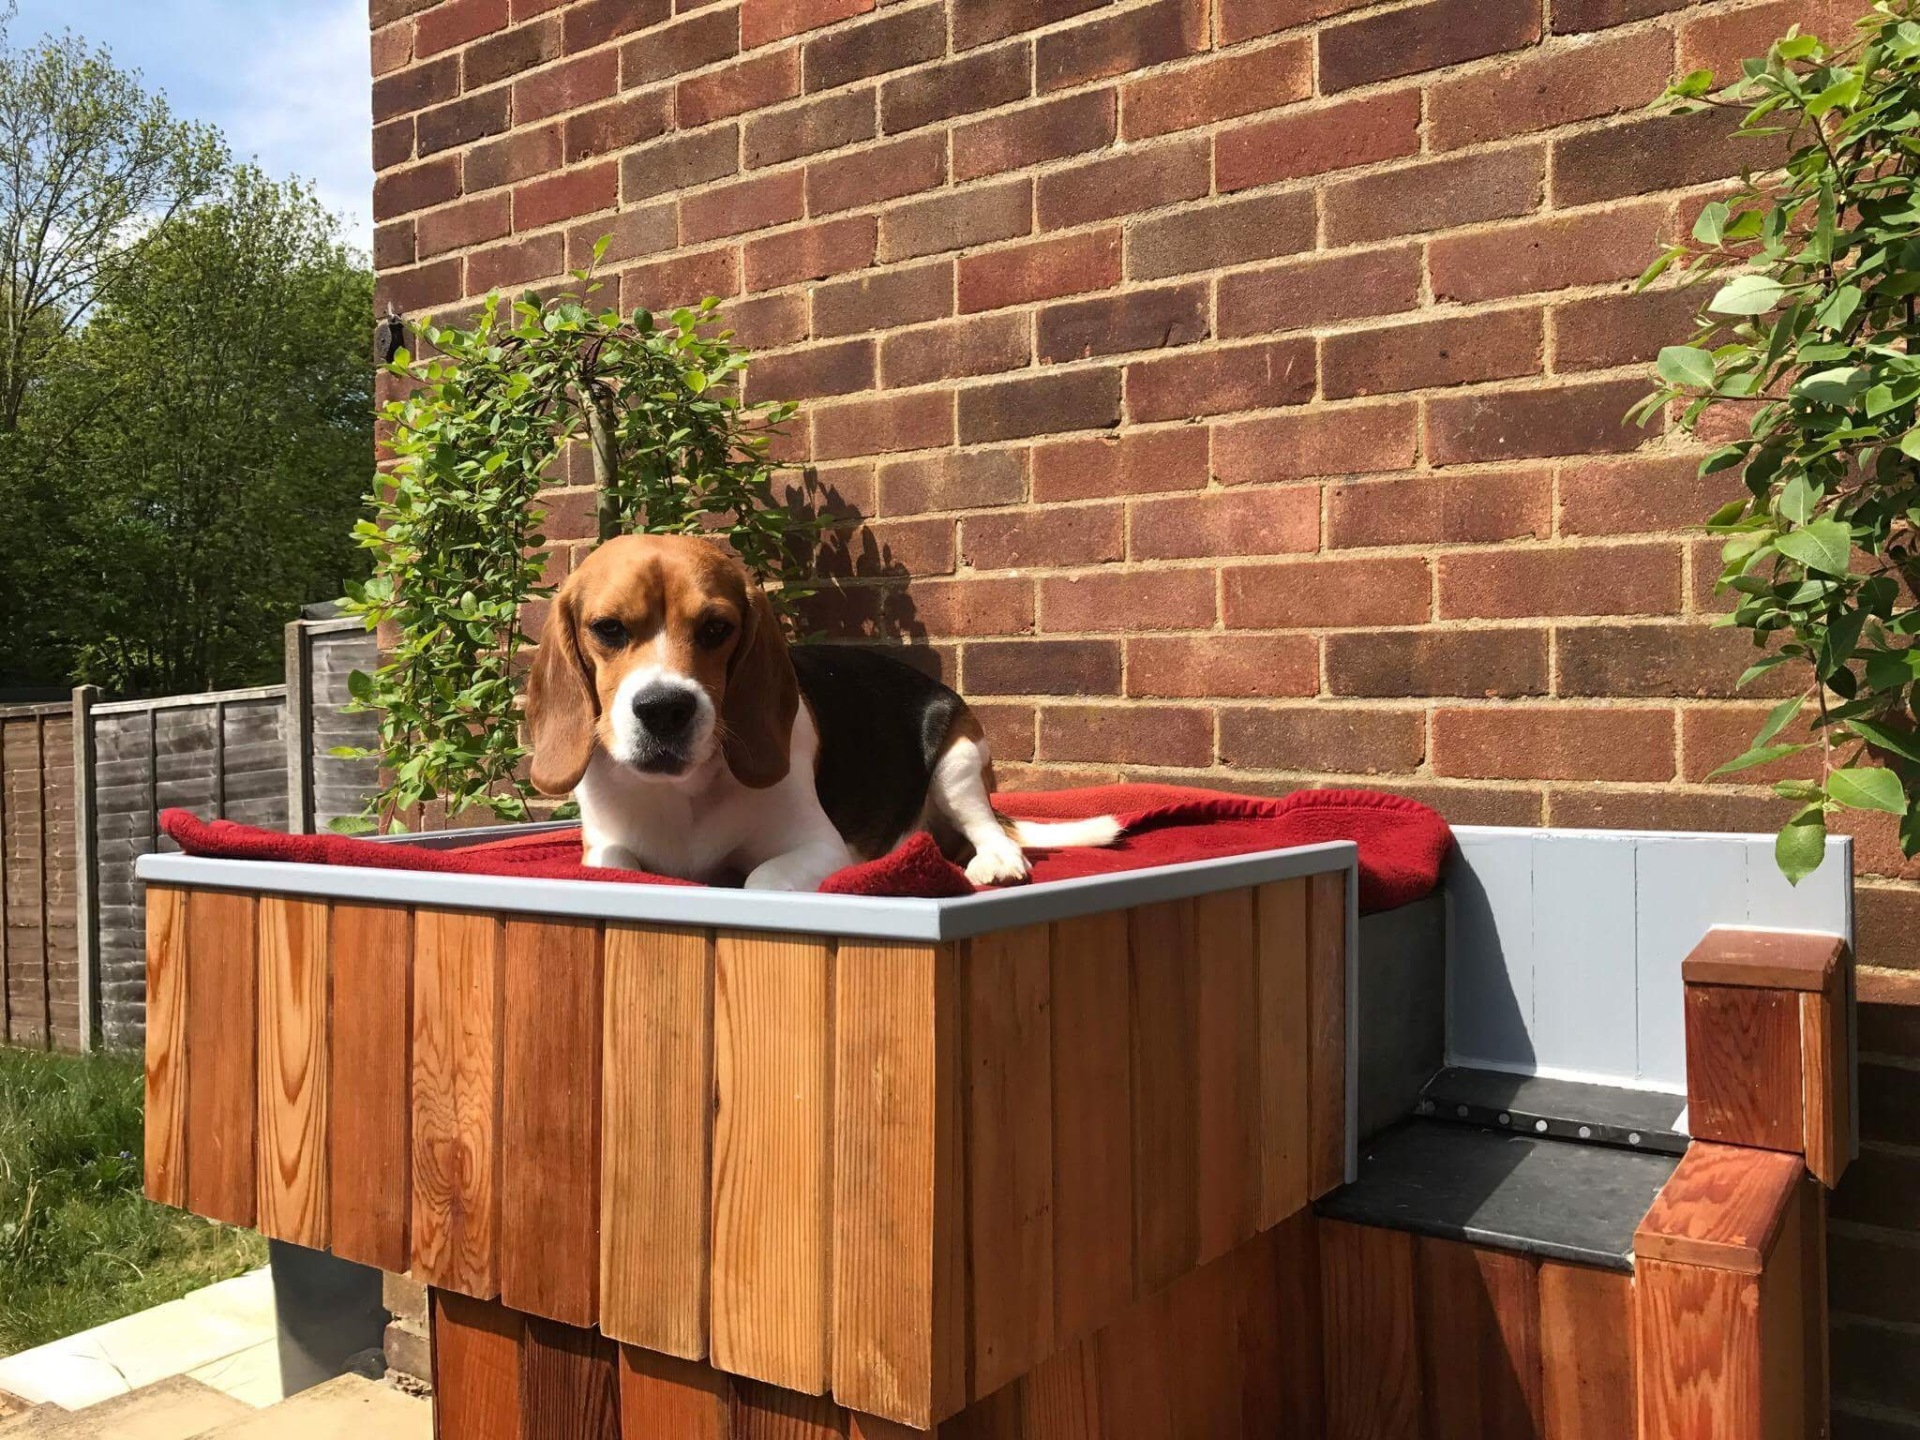 TOBIA IN HIS NEW BESPOKE CONTEMPORARY KENNEL